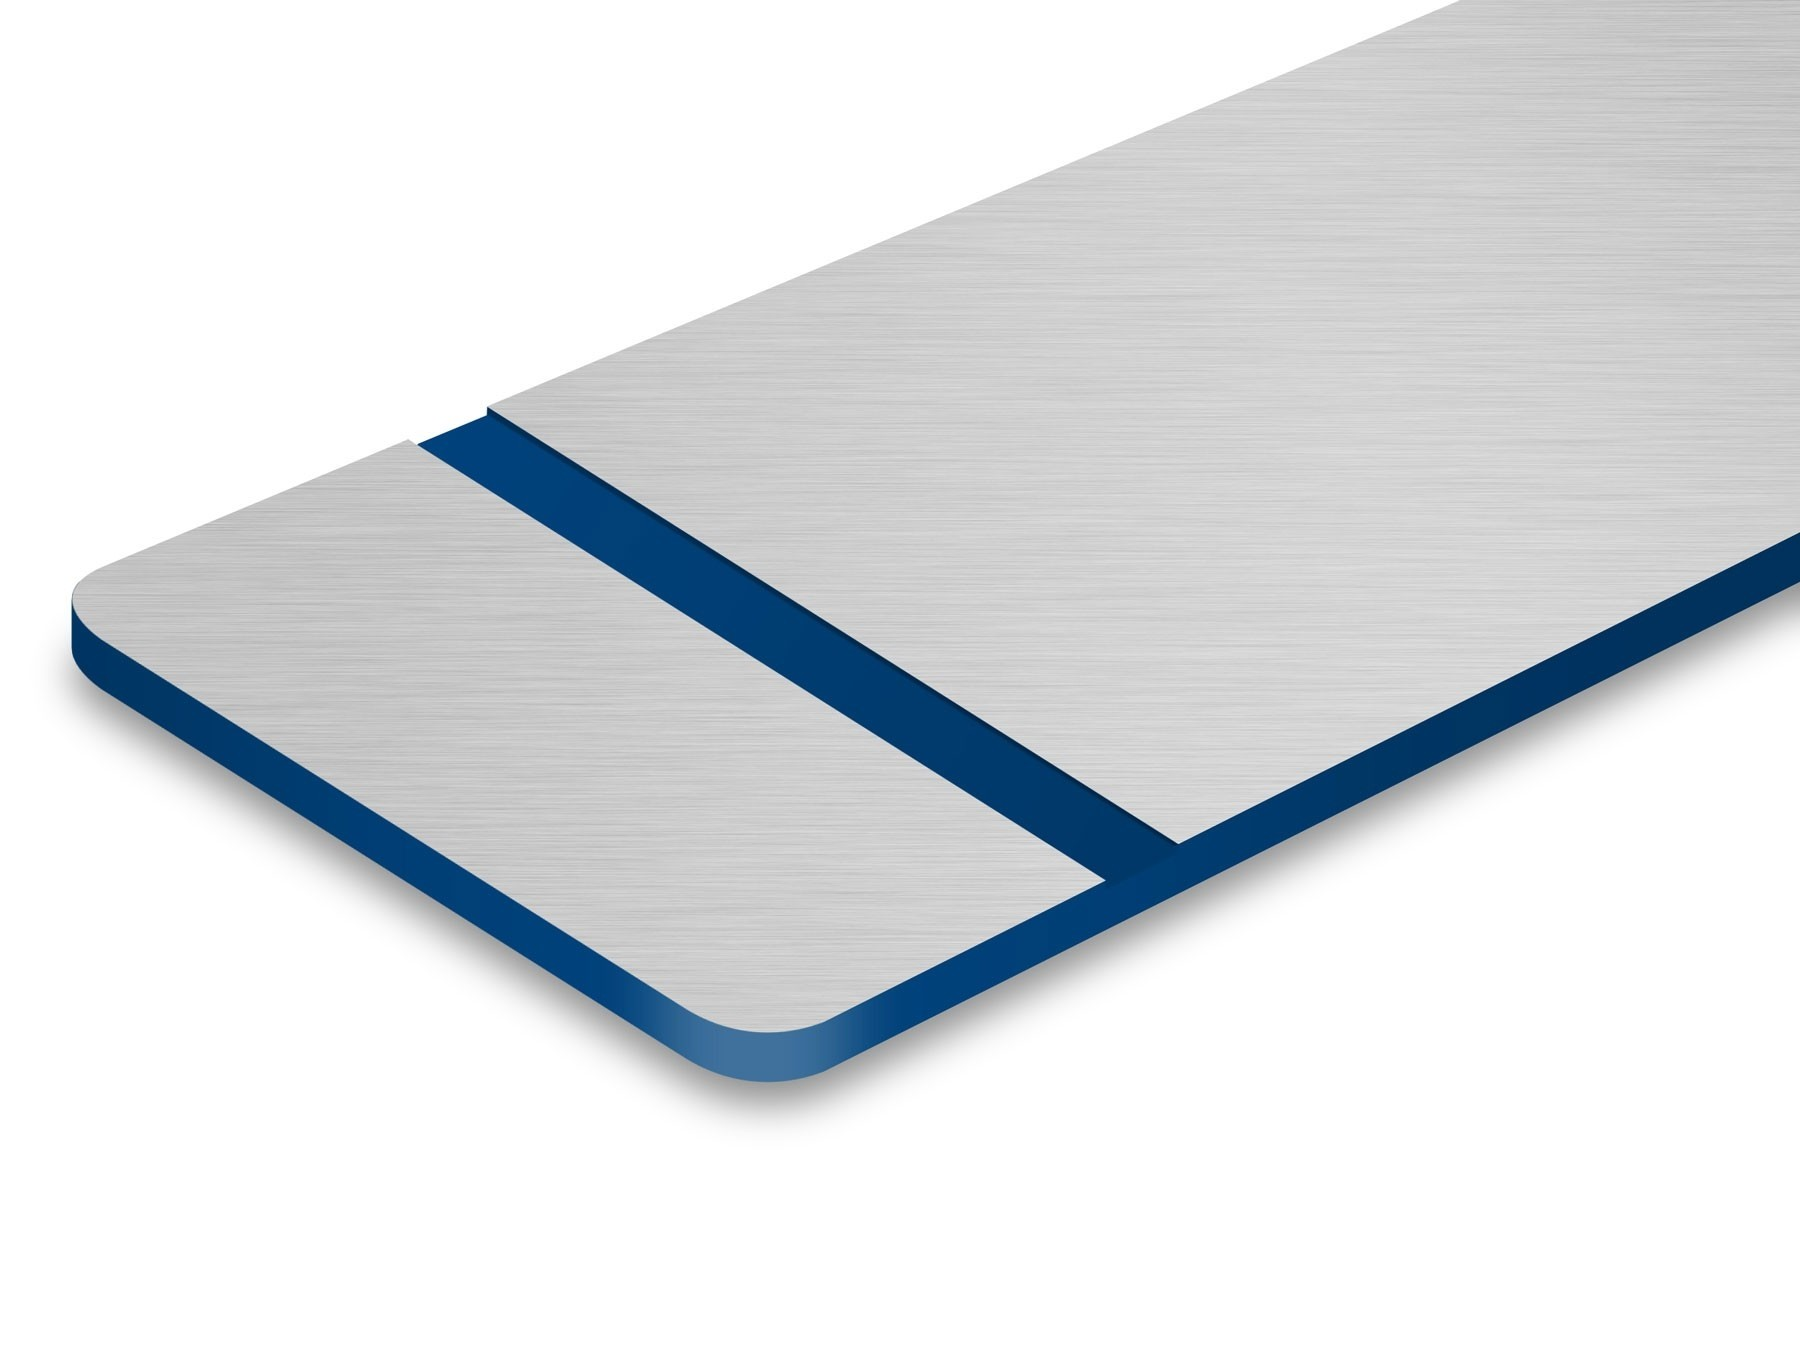 TroLase Metallic Plus, Stainless Steel Brushed/Blue, 2ply, 1.6 mm